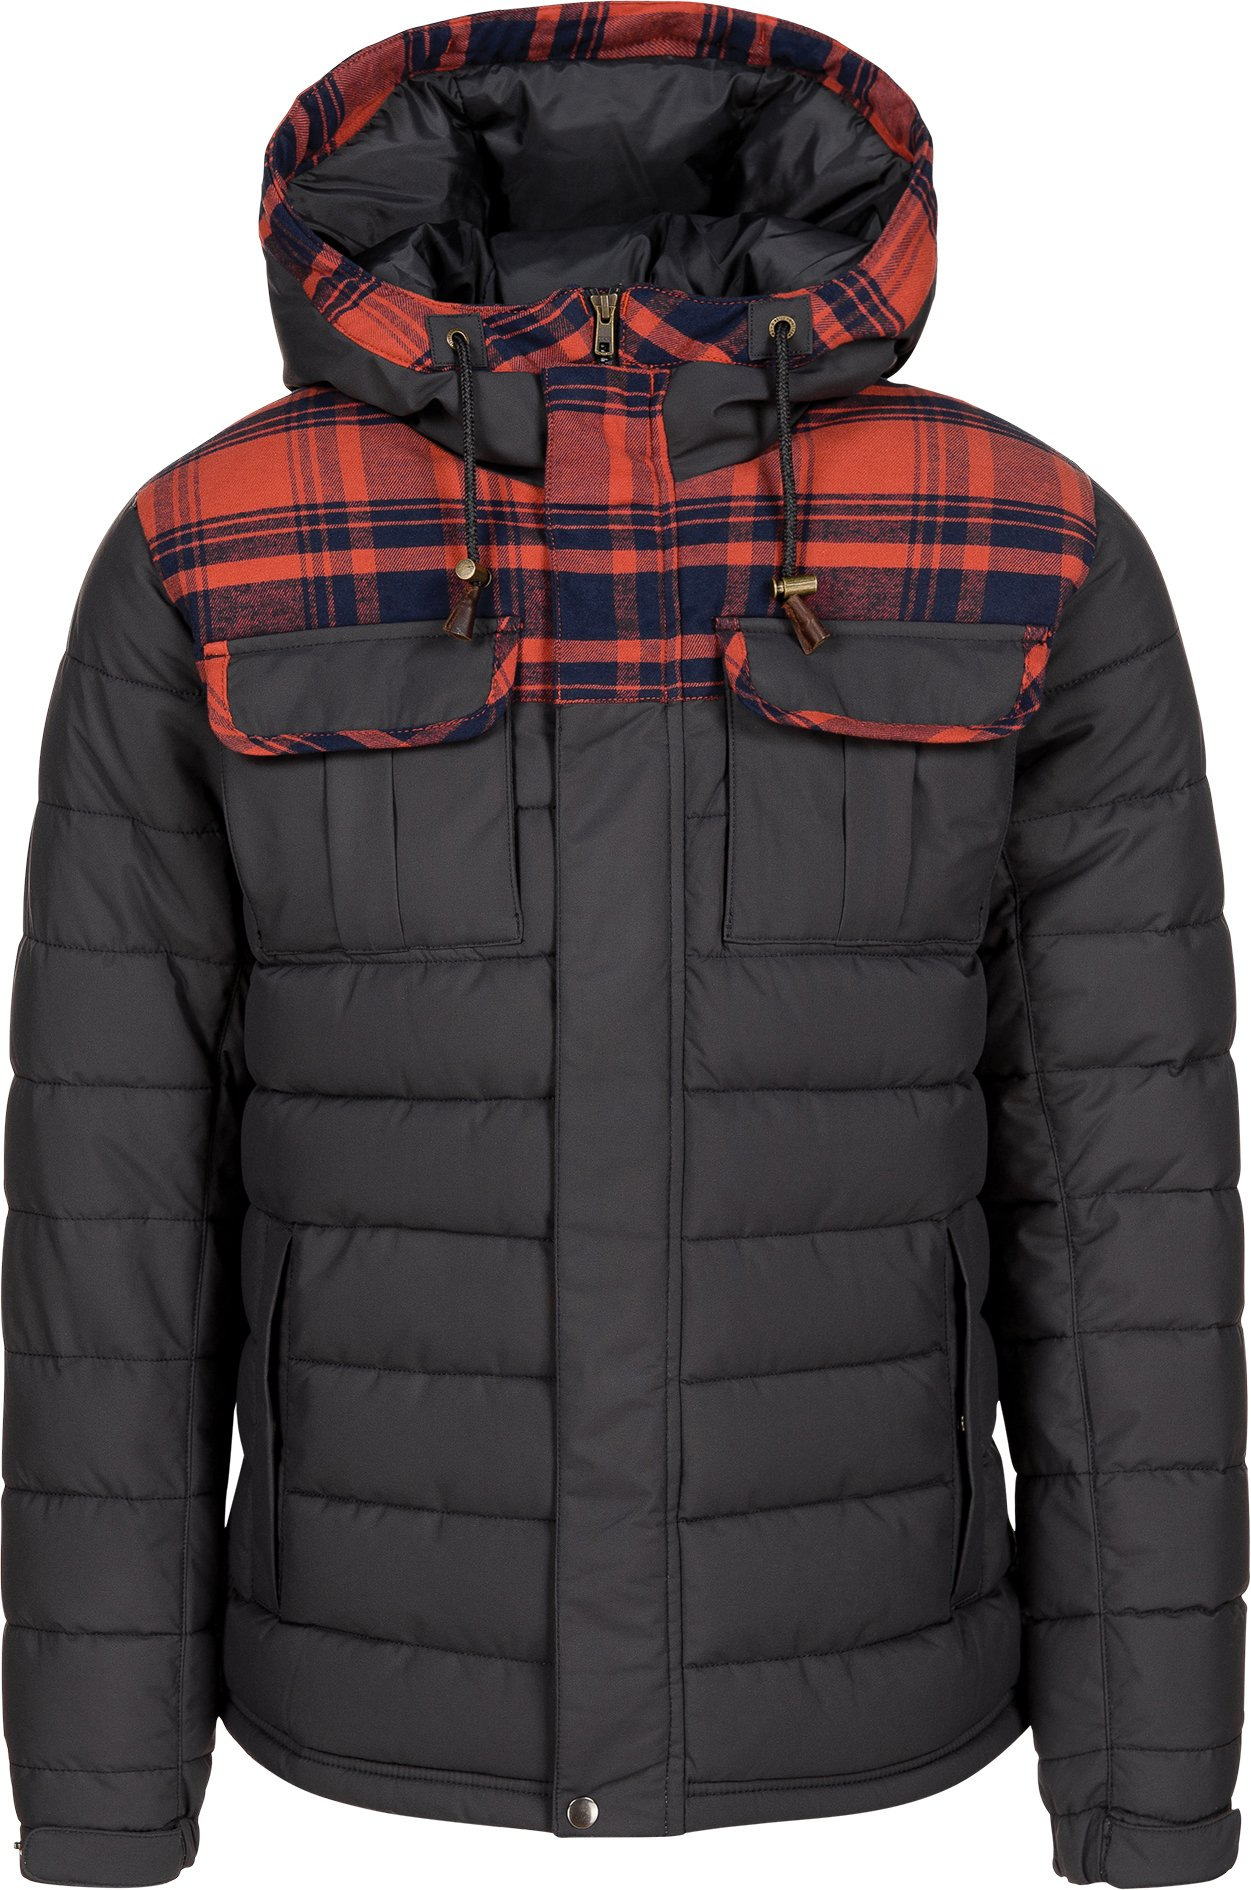 O'Neill Men's Charger Jacket, Small, Granite